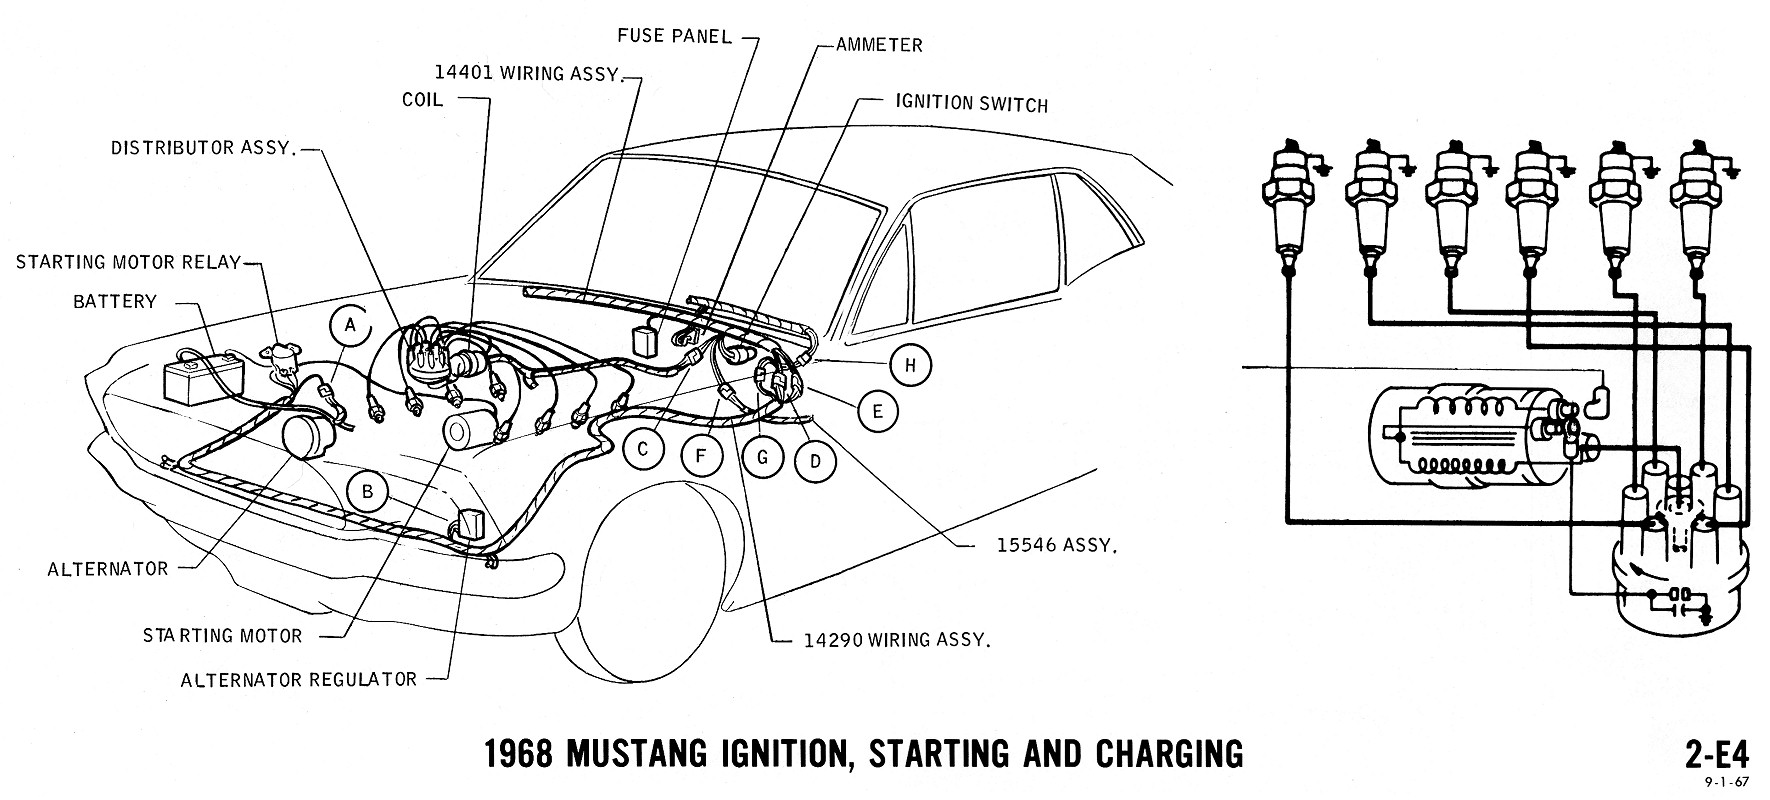 1968 mustang wiring diagram ignition starting charging 2 1969 mustang wiring diagram 1969 ranchero wiring diagram \u2022 wiring 1966 mustang wiring diagram pdf at alyssarenee.co